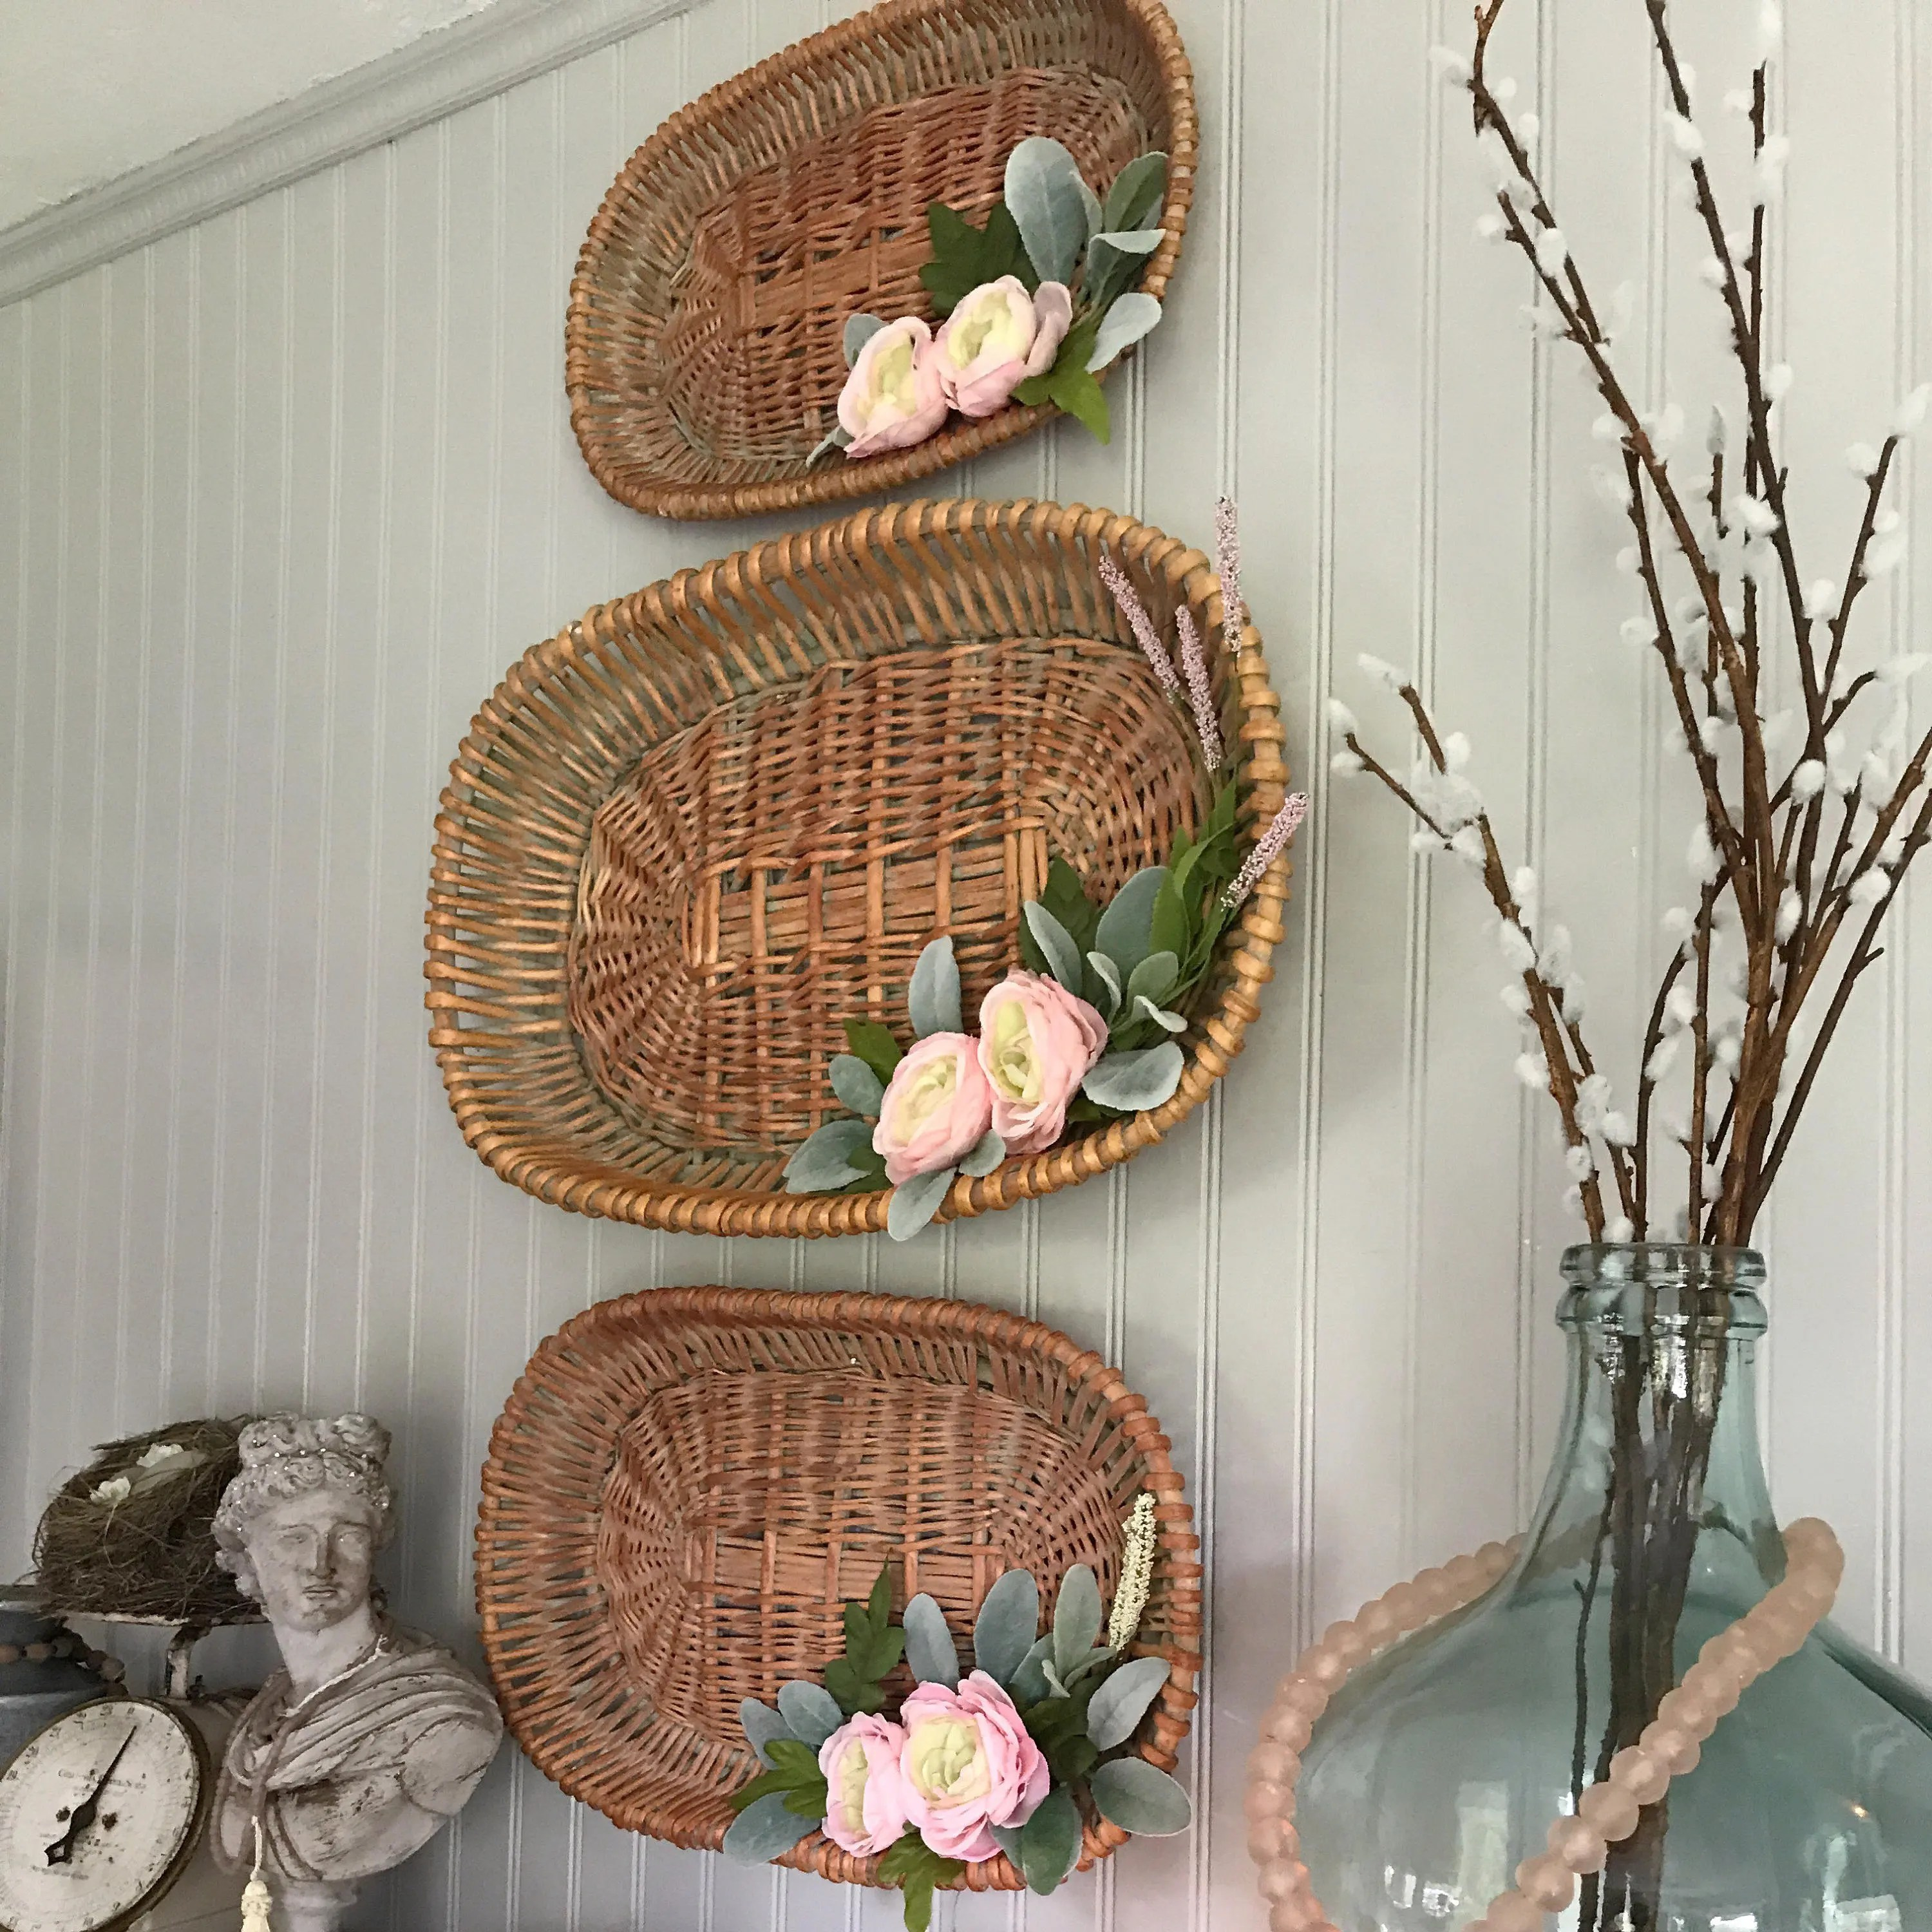 Wall Hanging Basket Basket Trio Floral Farmhouse Shabby on Decorative Wall Sconces For Flowers Hanging Baskets Delivery id=24296